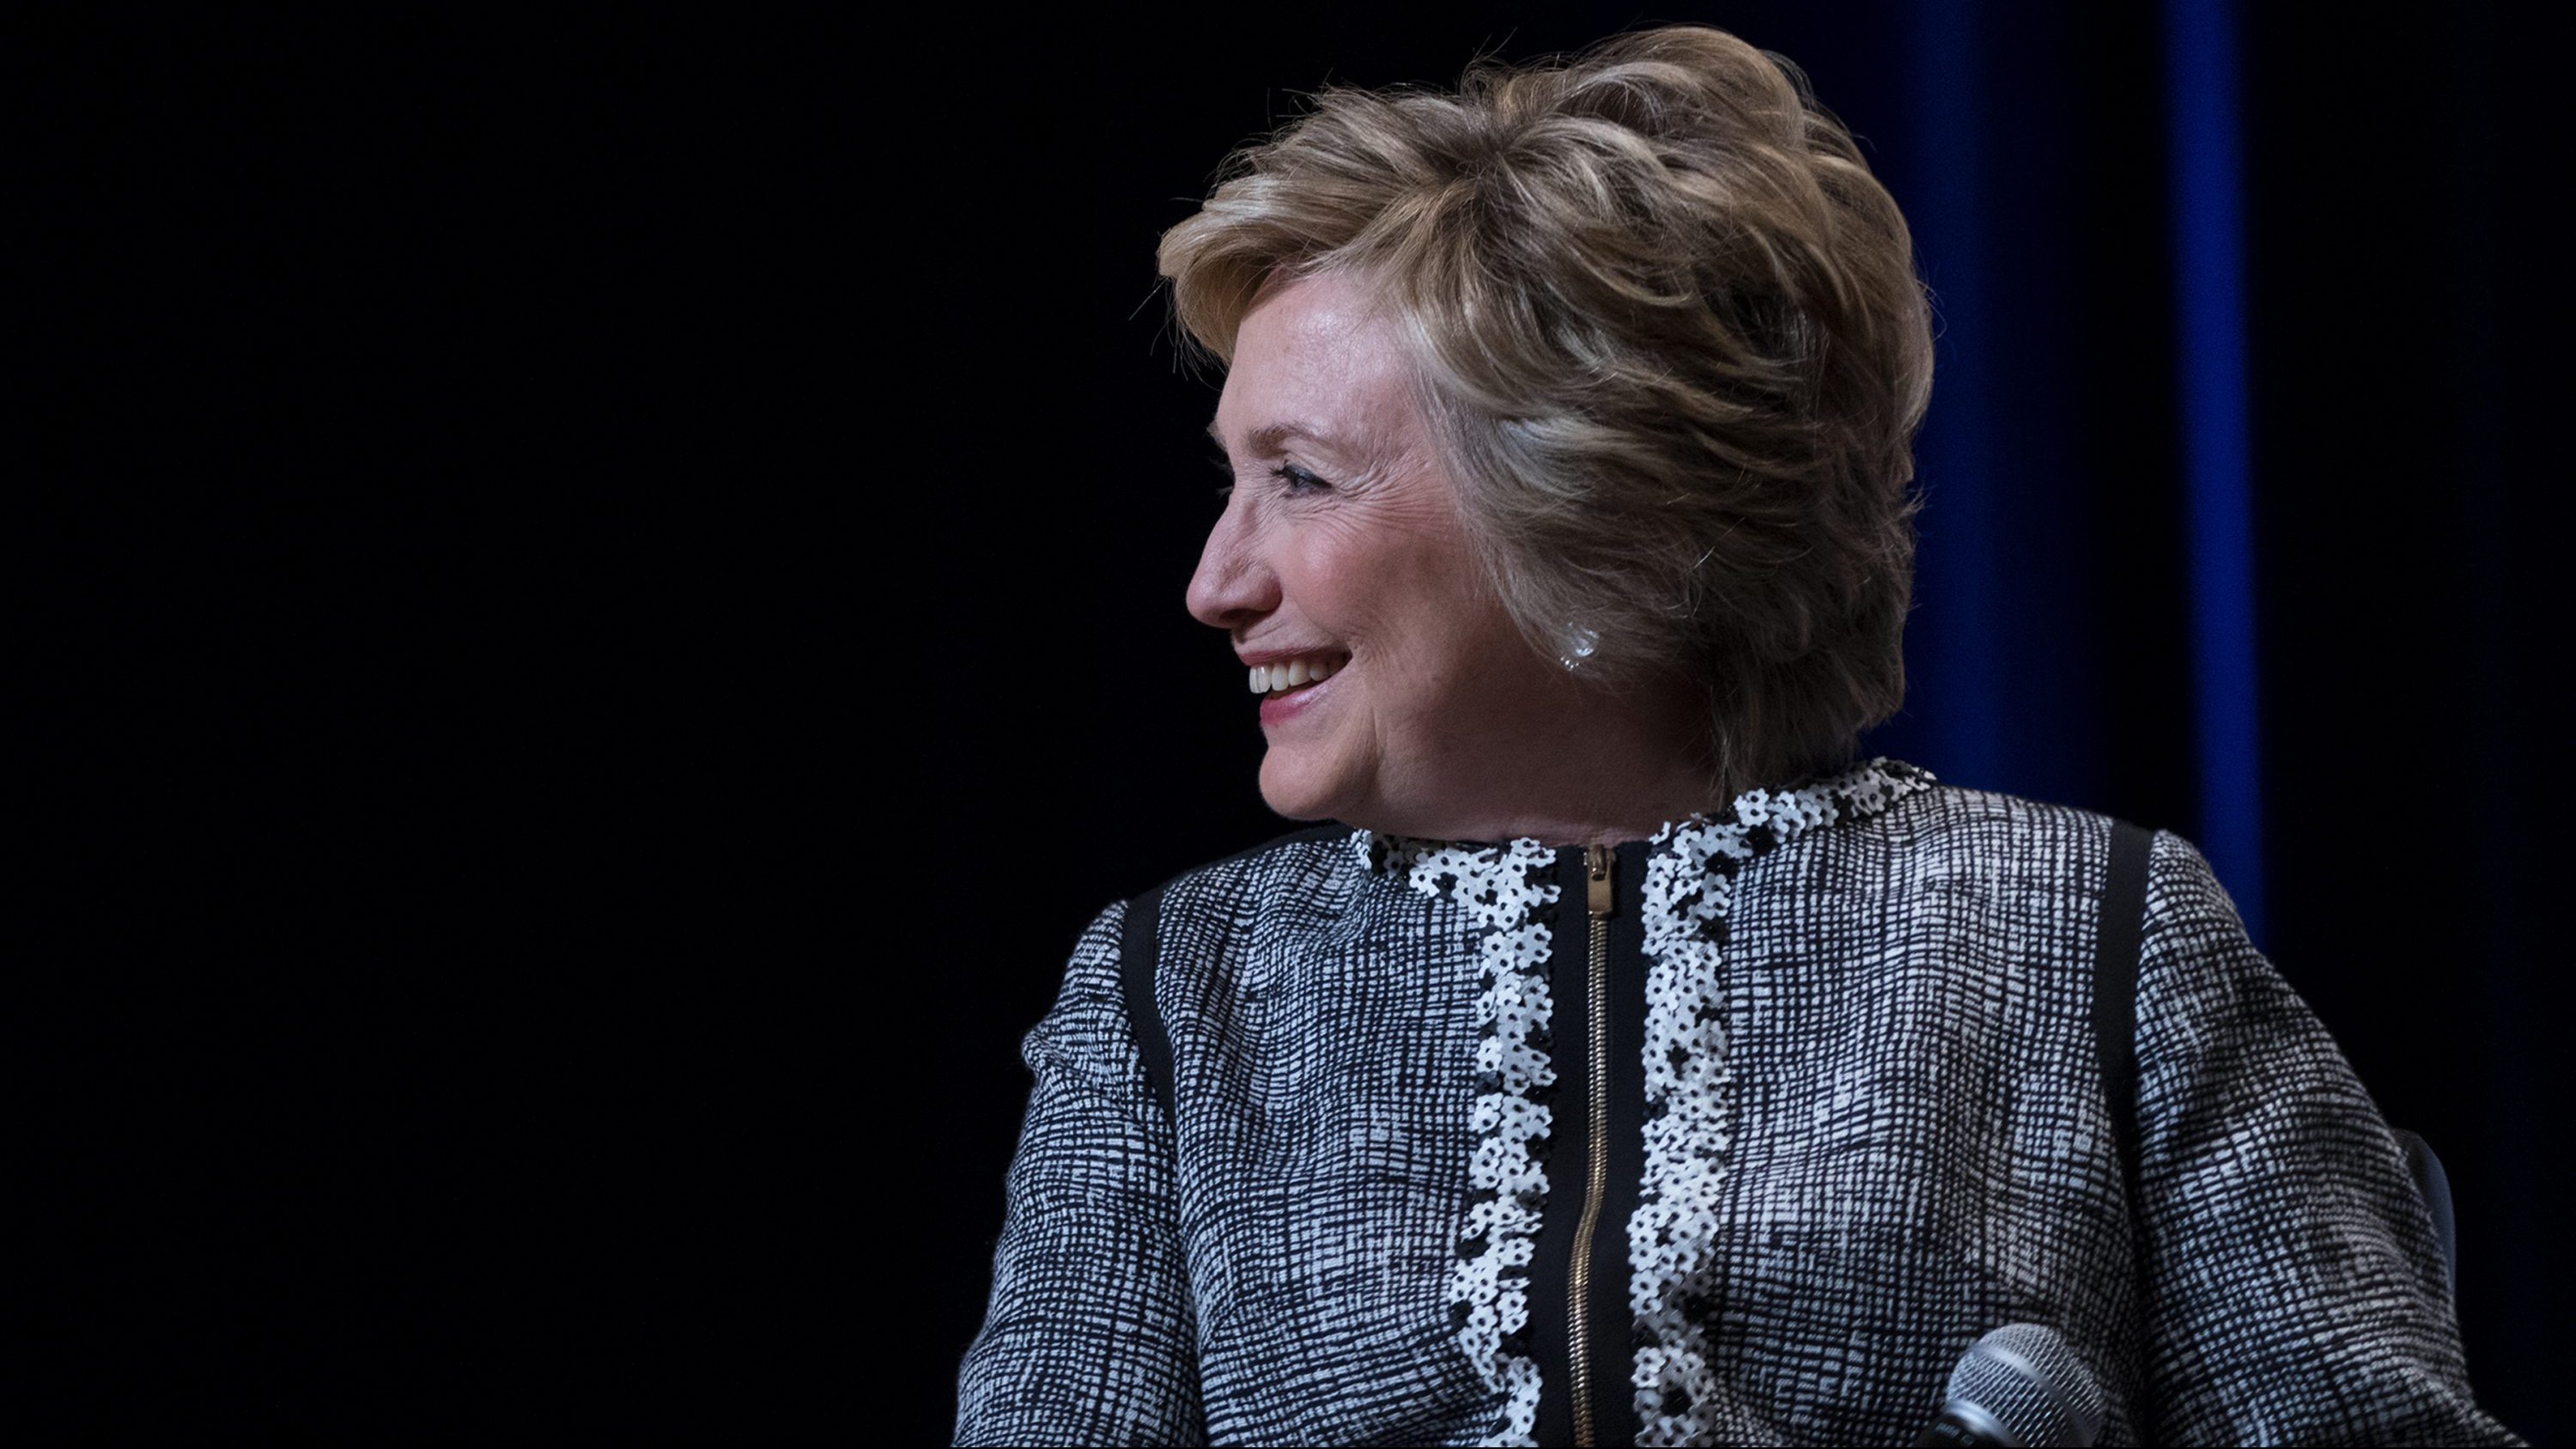 Former Secretary of State Hillary Clinton looks out at the audience as she speaks during the Book Expo event in New York, Thursday, June 1, 2017.